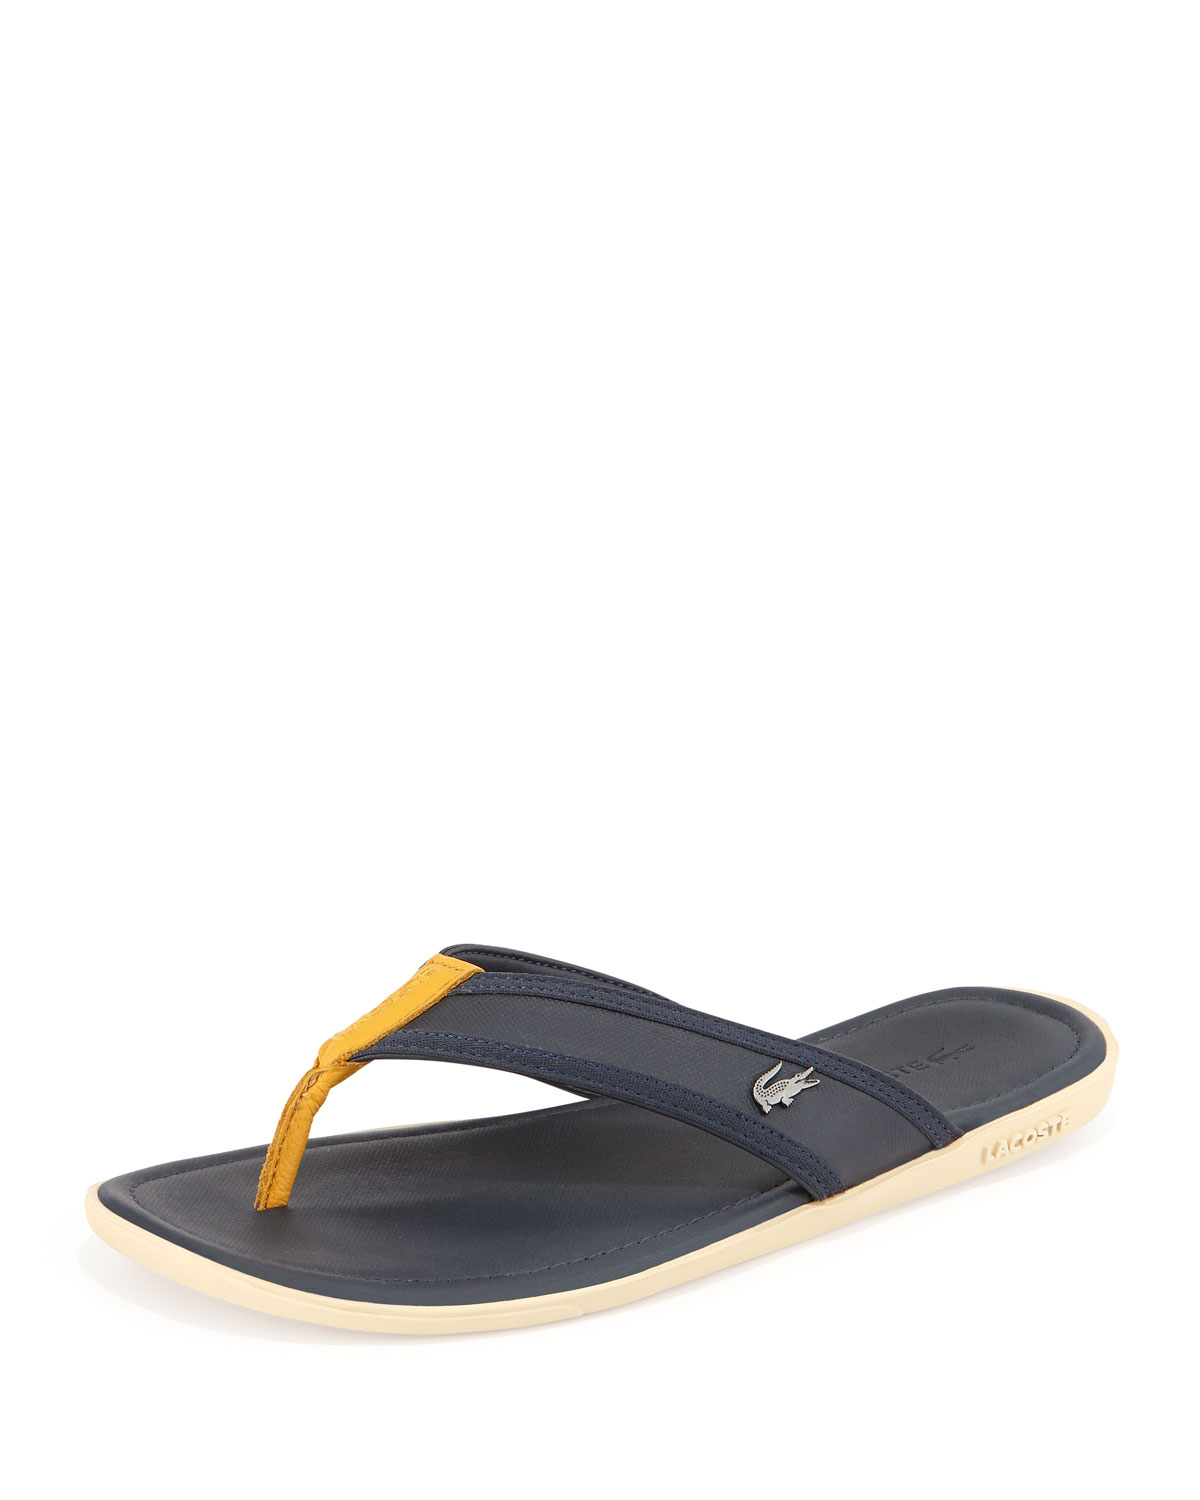 1935cd244 Lacoste Carros Mens Thong Sandal in Yellow for Men - Lyst